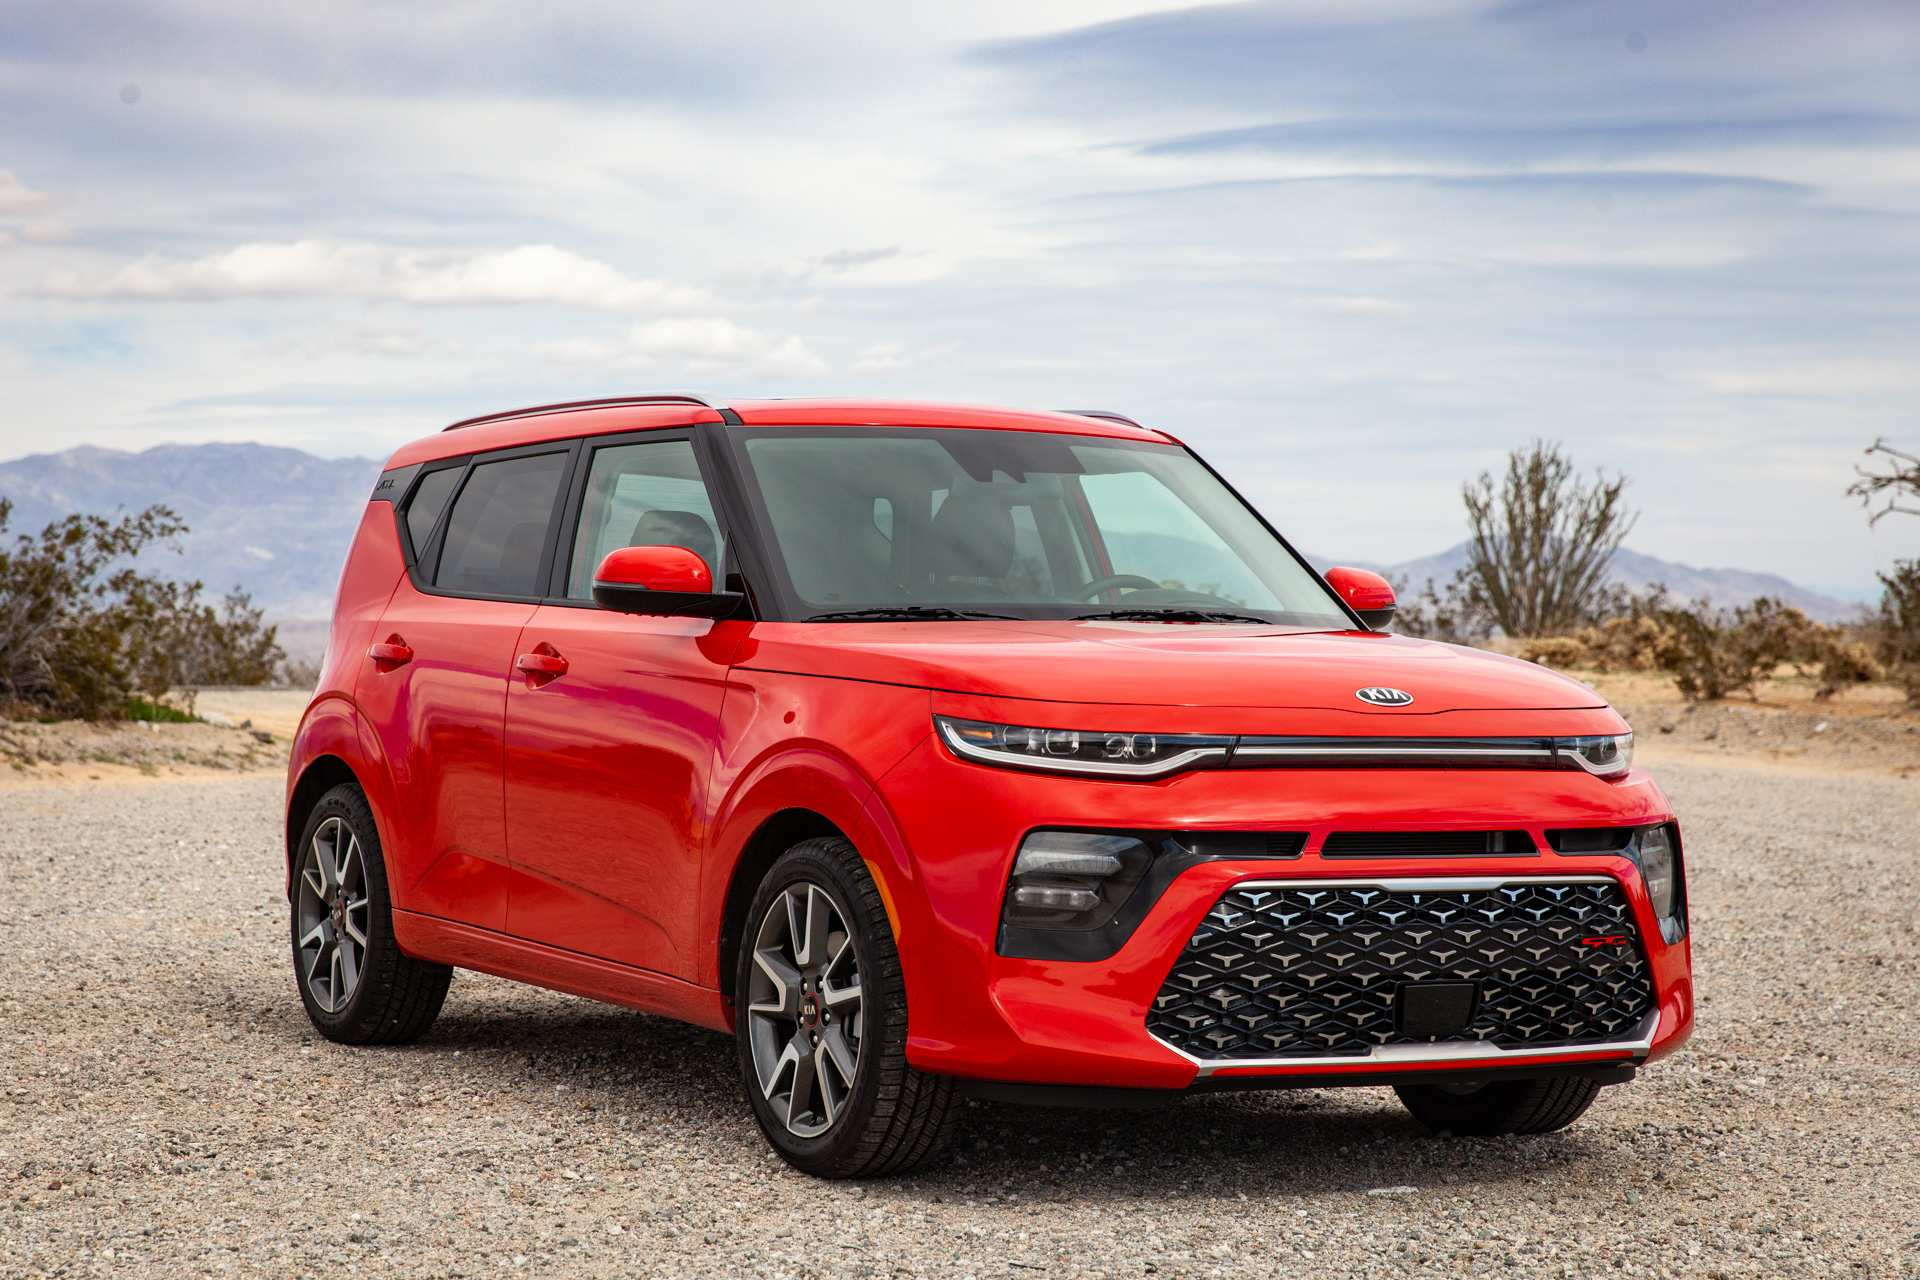 99 Great 2020 Kia Soul Vs Honda Hrv Prices by 2020 Kia Soul Vs Honda Hrv